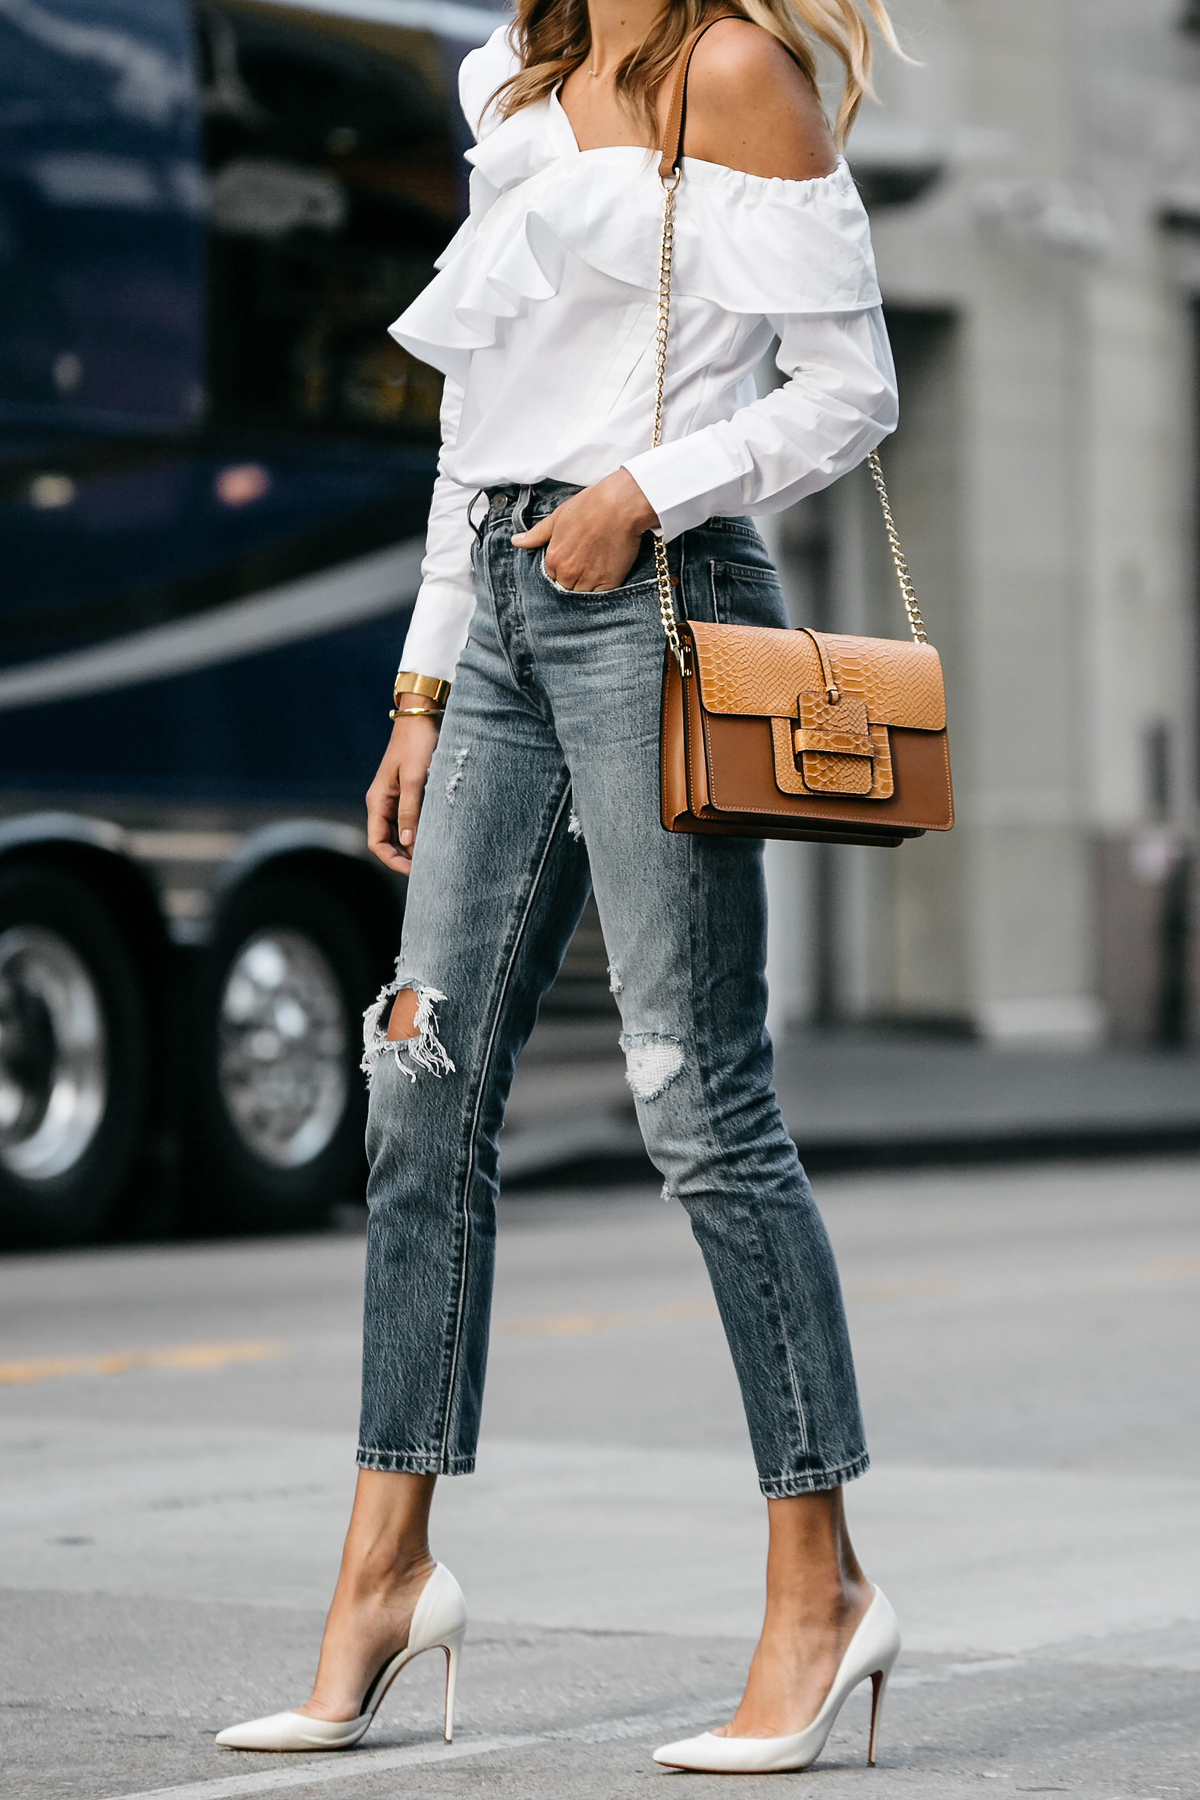 Shopbop White Asymmetrical Ruffle Top Levis Denim Ripped Skinny Jeans Christian Louboutin White Pumps Street Style Dallas Blogger Fashion Blogger